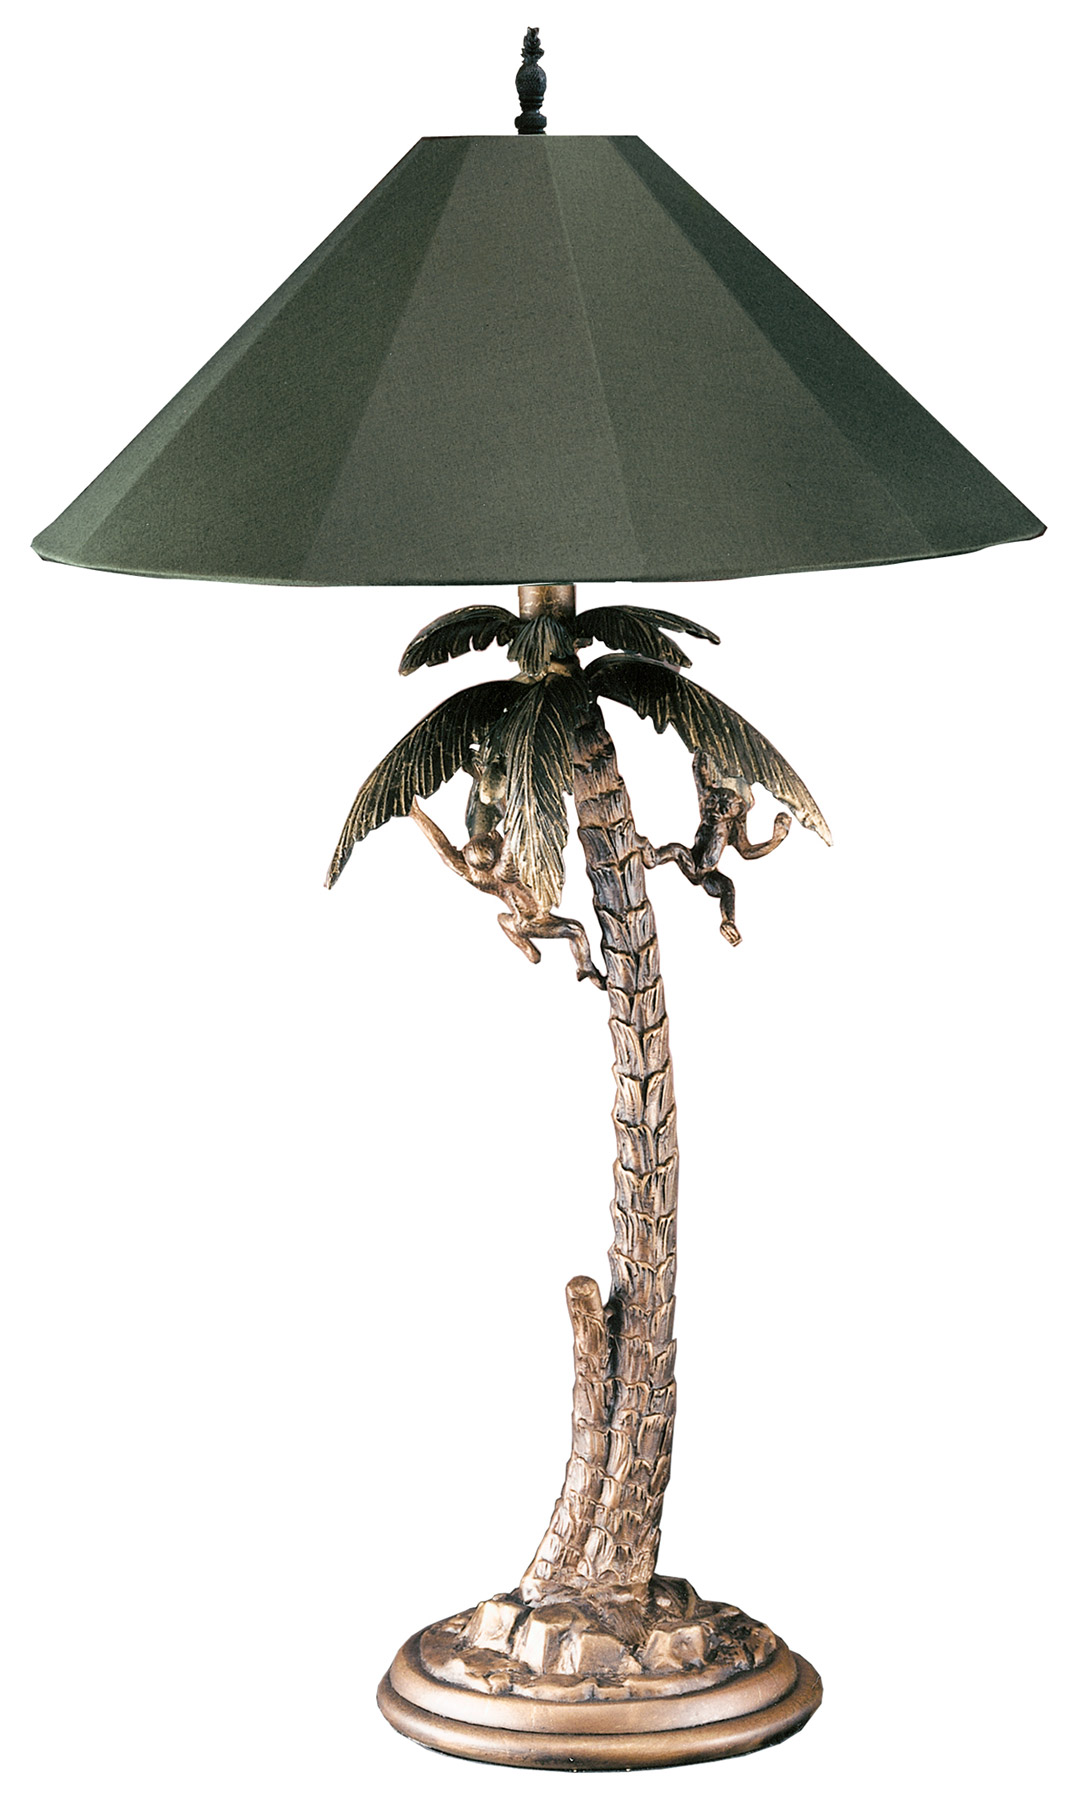 10 reasons to buy Palm tree lamps